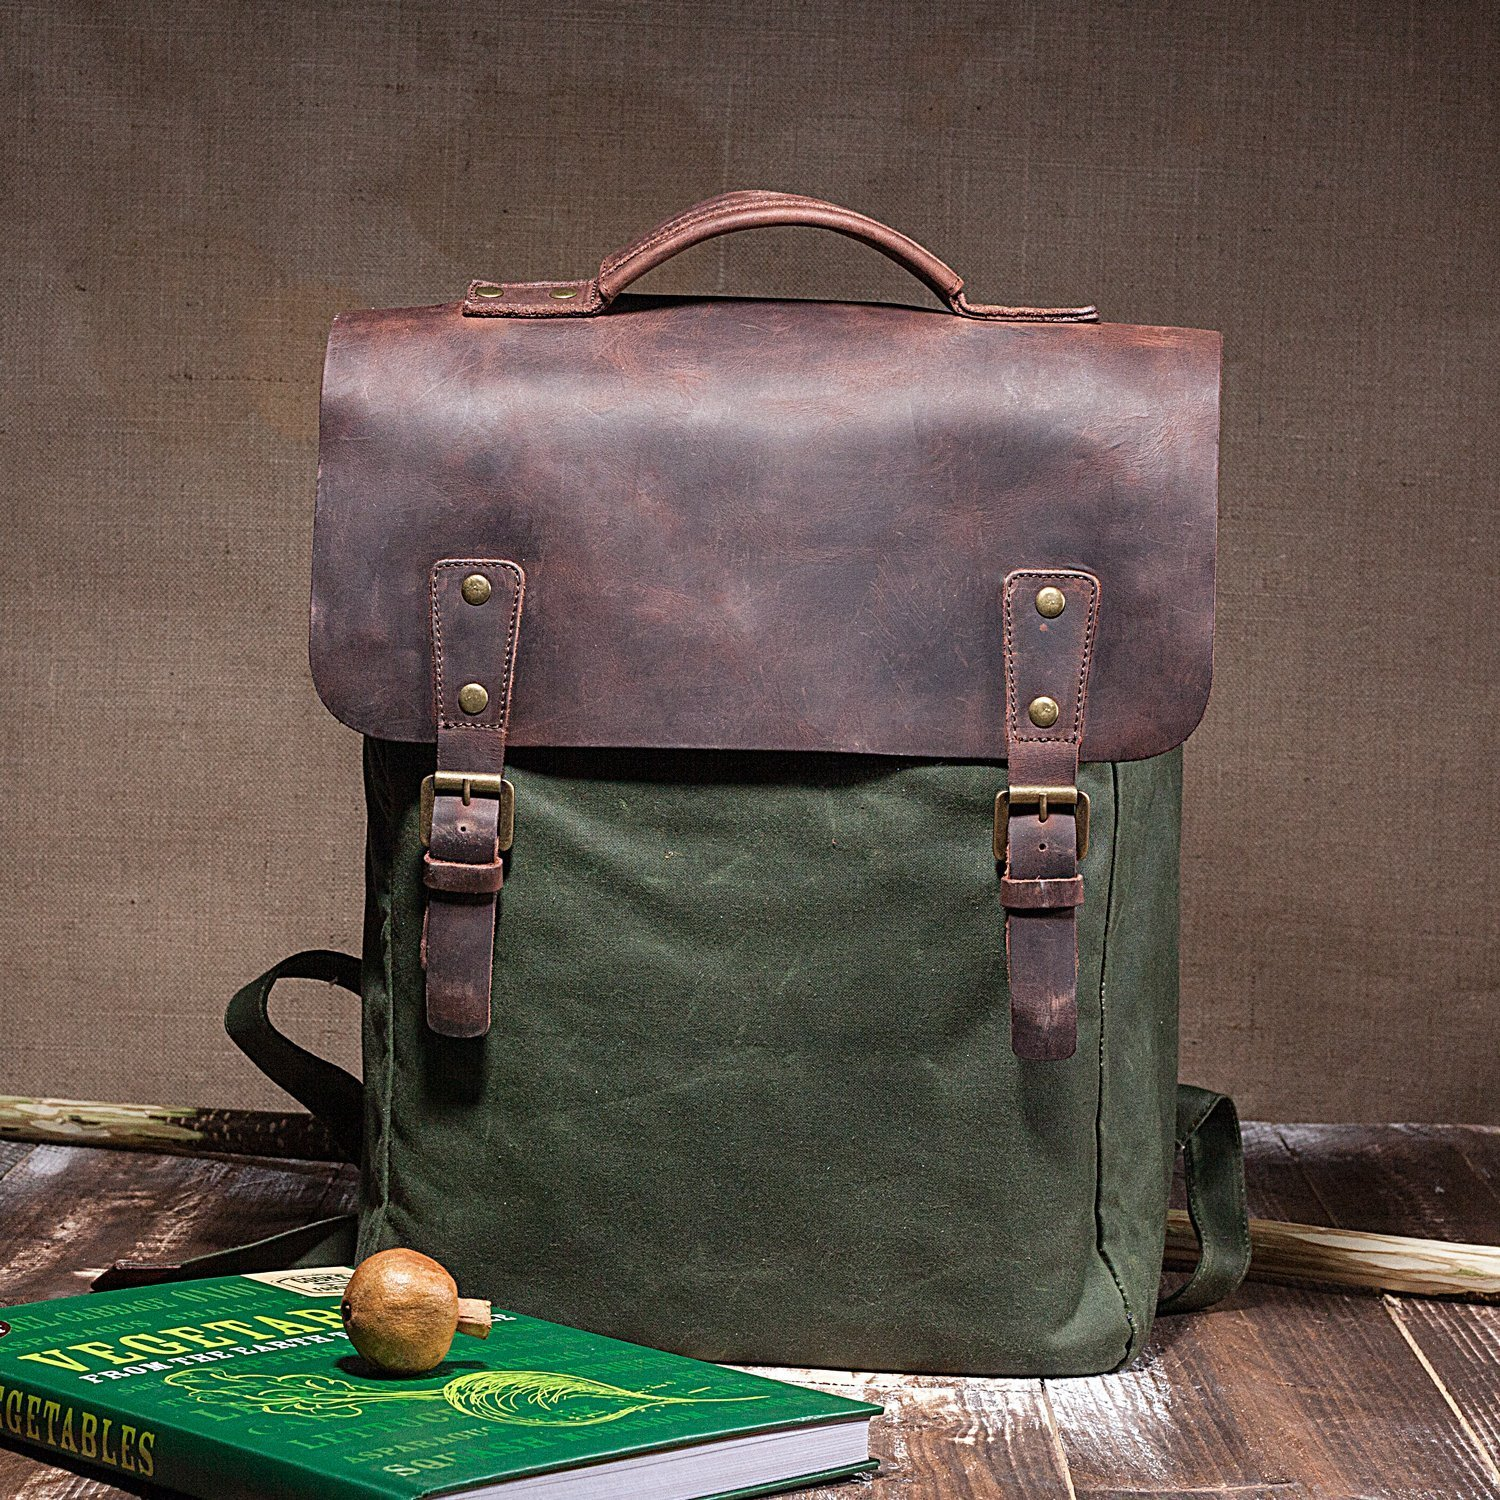 Classic Handmade Waxed Canvas Flap Backpack With Natural Leather Cover - High Quality Laptop Rucksack With Waterproof Lining For Men And Women - Old School Laptop Bag Up to 15 in